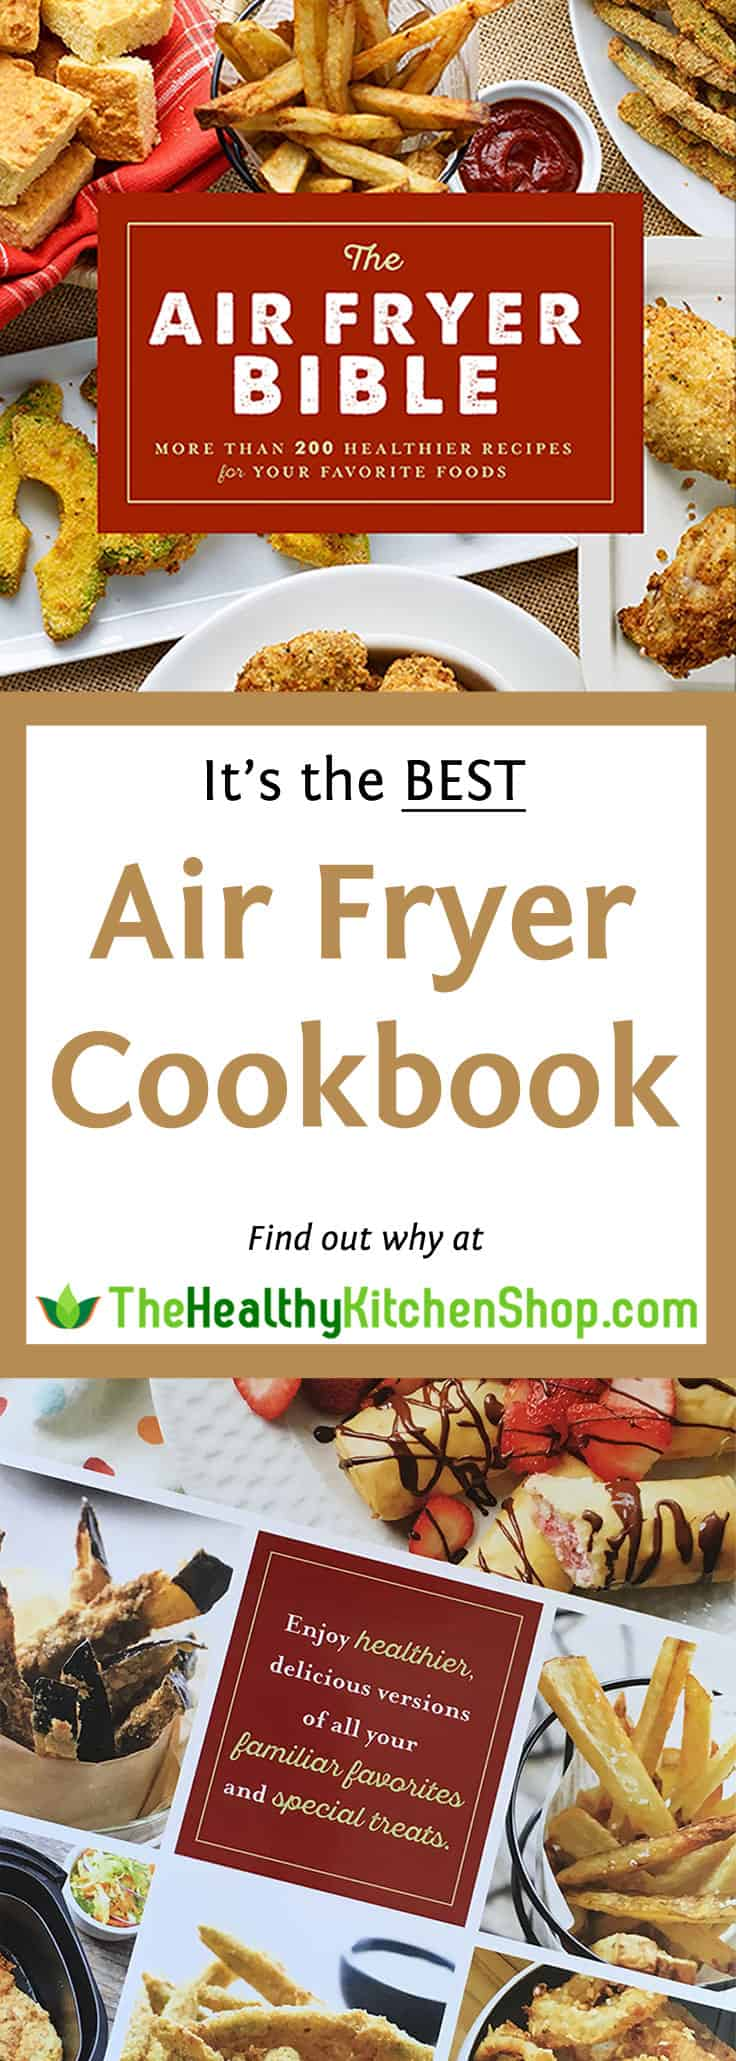 The Air Fryer Bible is the best Air Fryer Cookbook - find out why at https://www.thehealthykitchenshop.com//